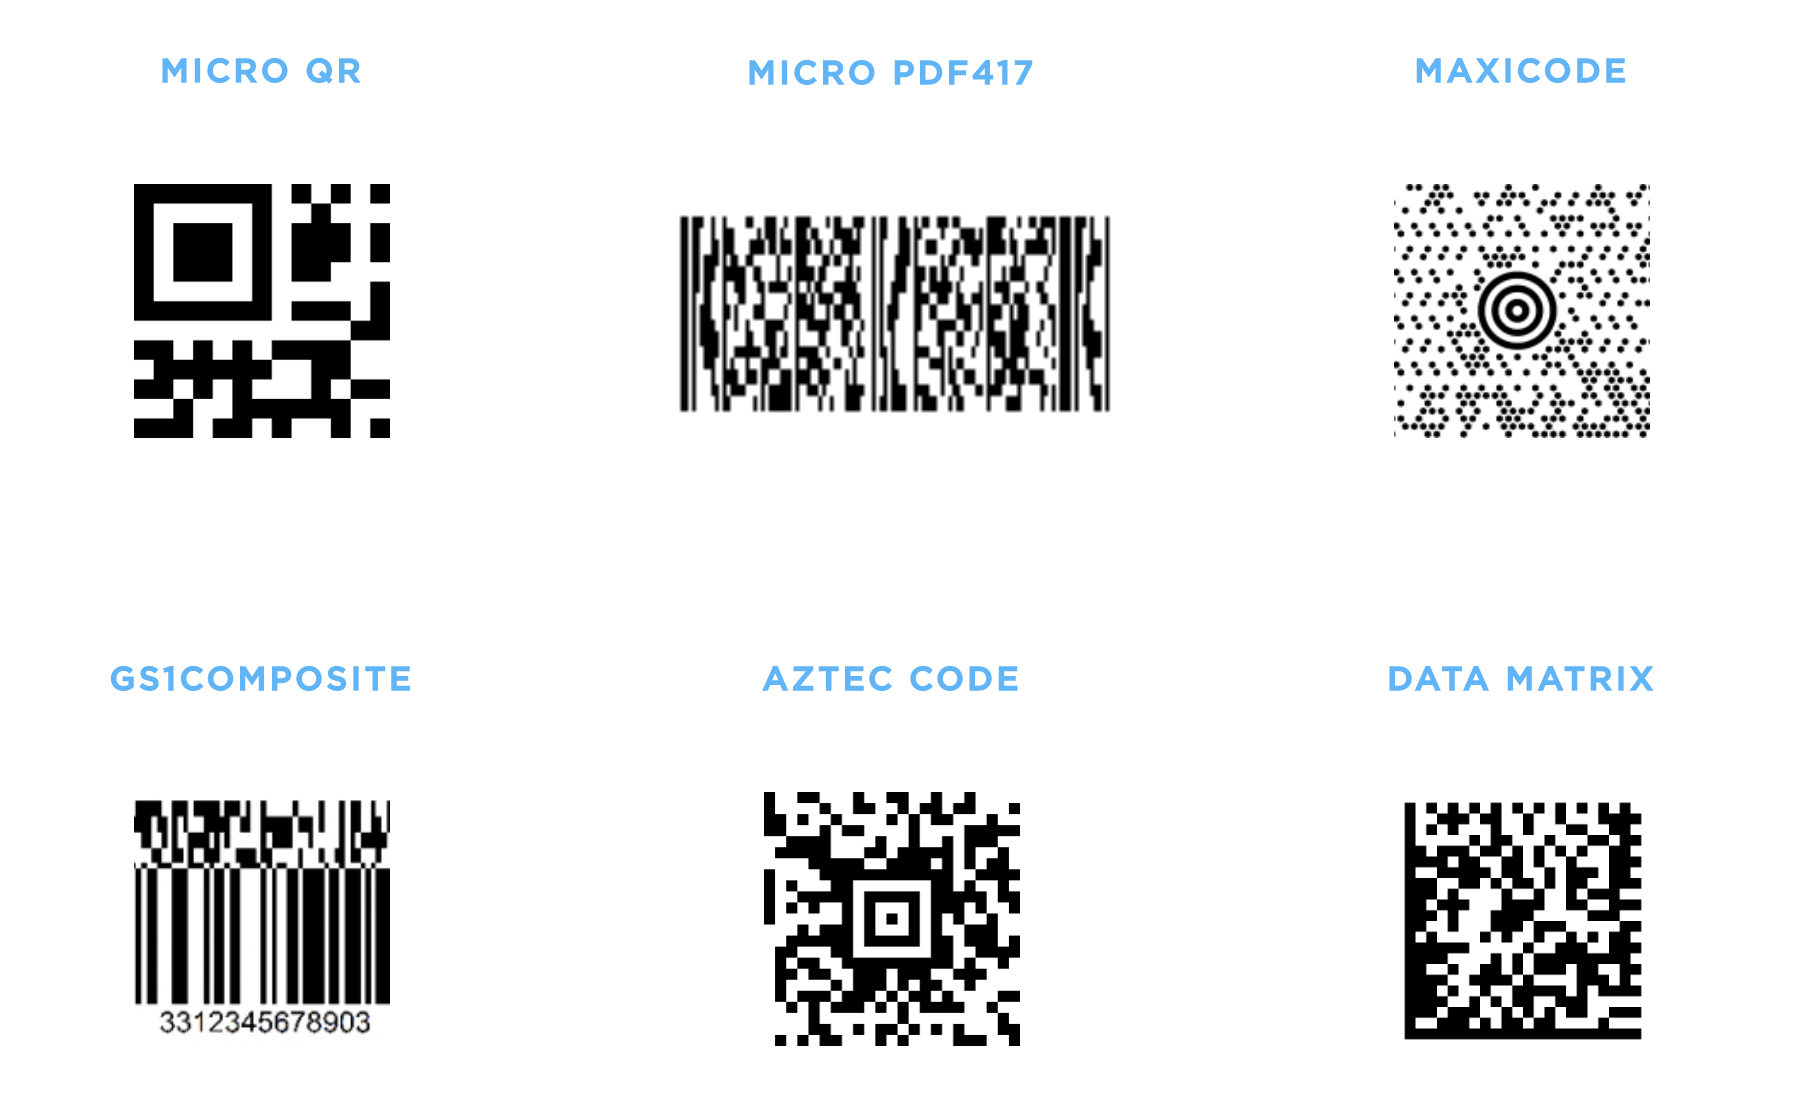 aila-advanced-barcode-symbologies-qr-maxi-code-data-matrix-pdf417-aztec-gs1